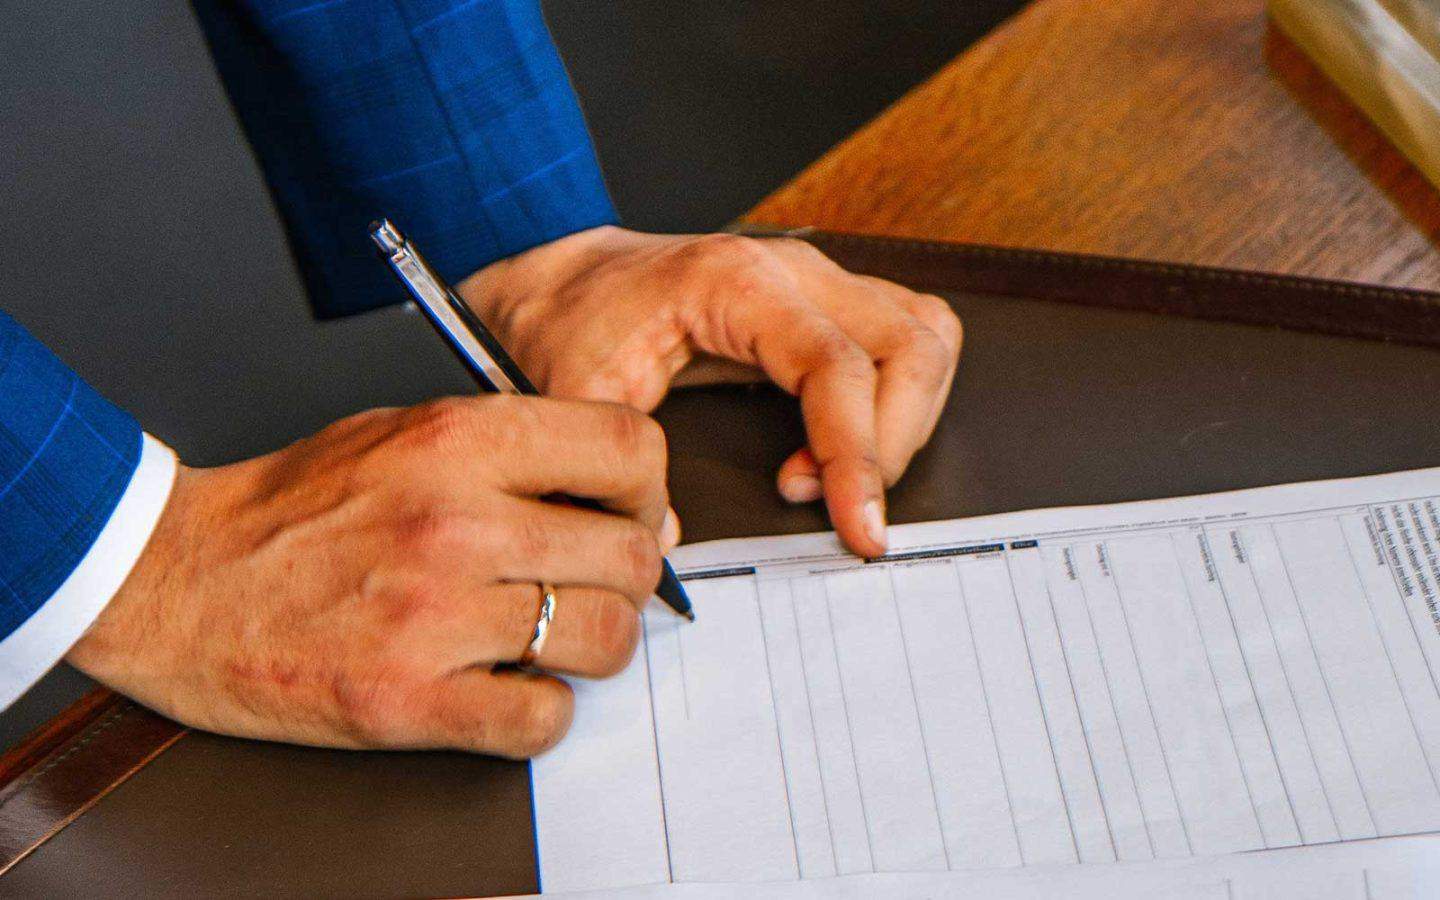 arm of man in blue suit holding pen writing on paper